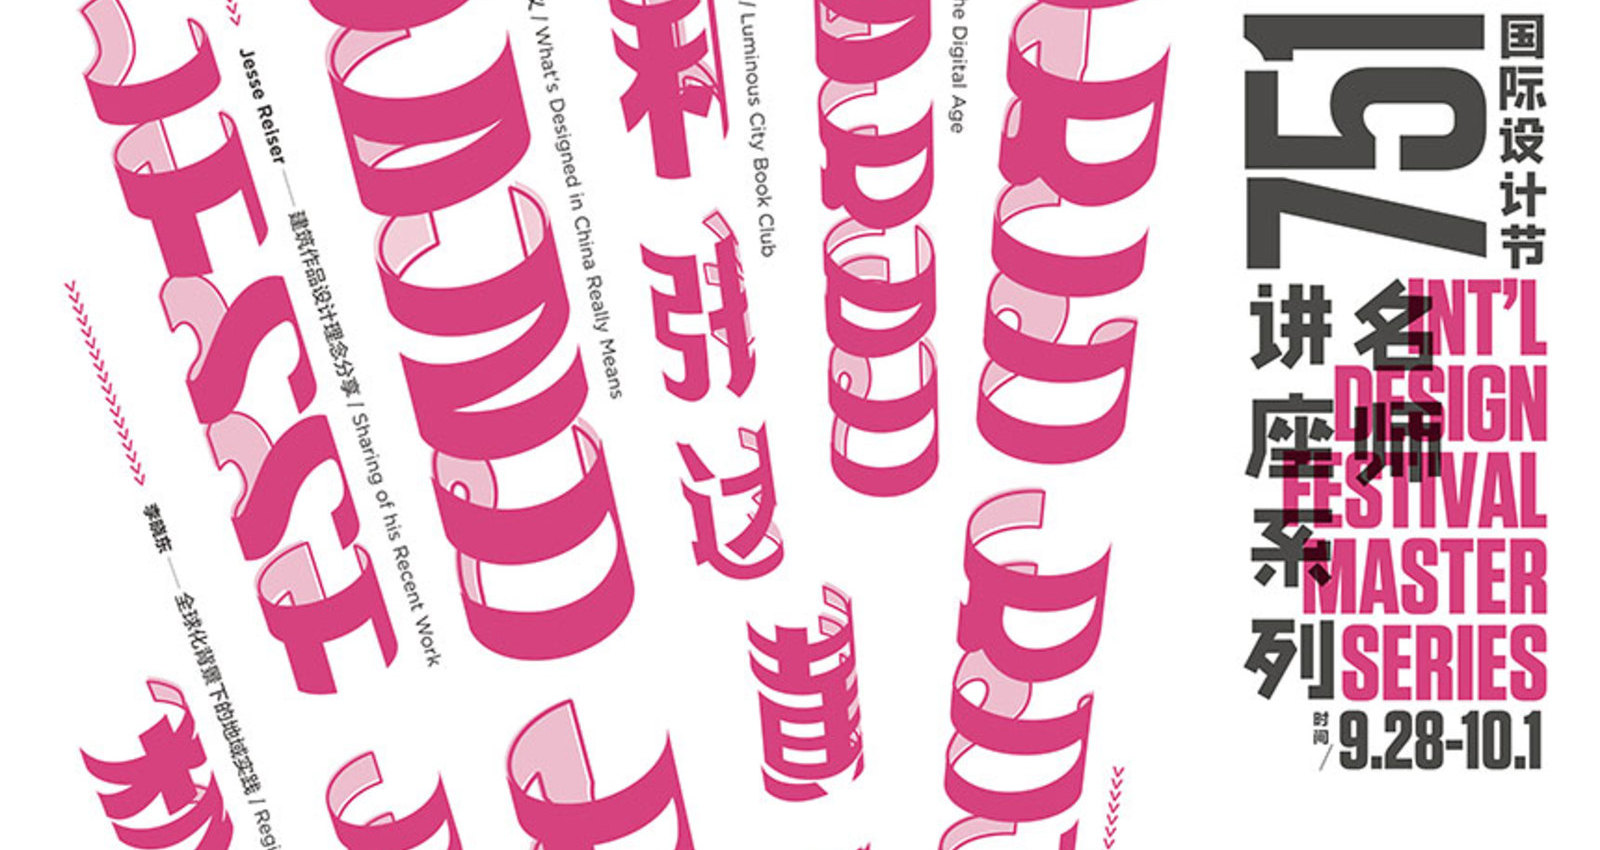 751 int'l design festival master series poster